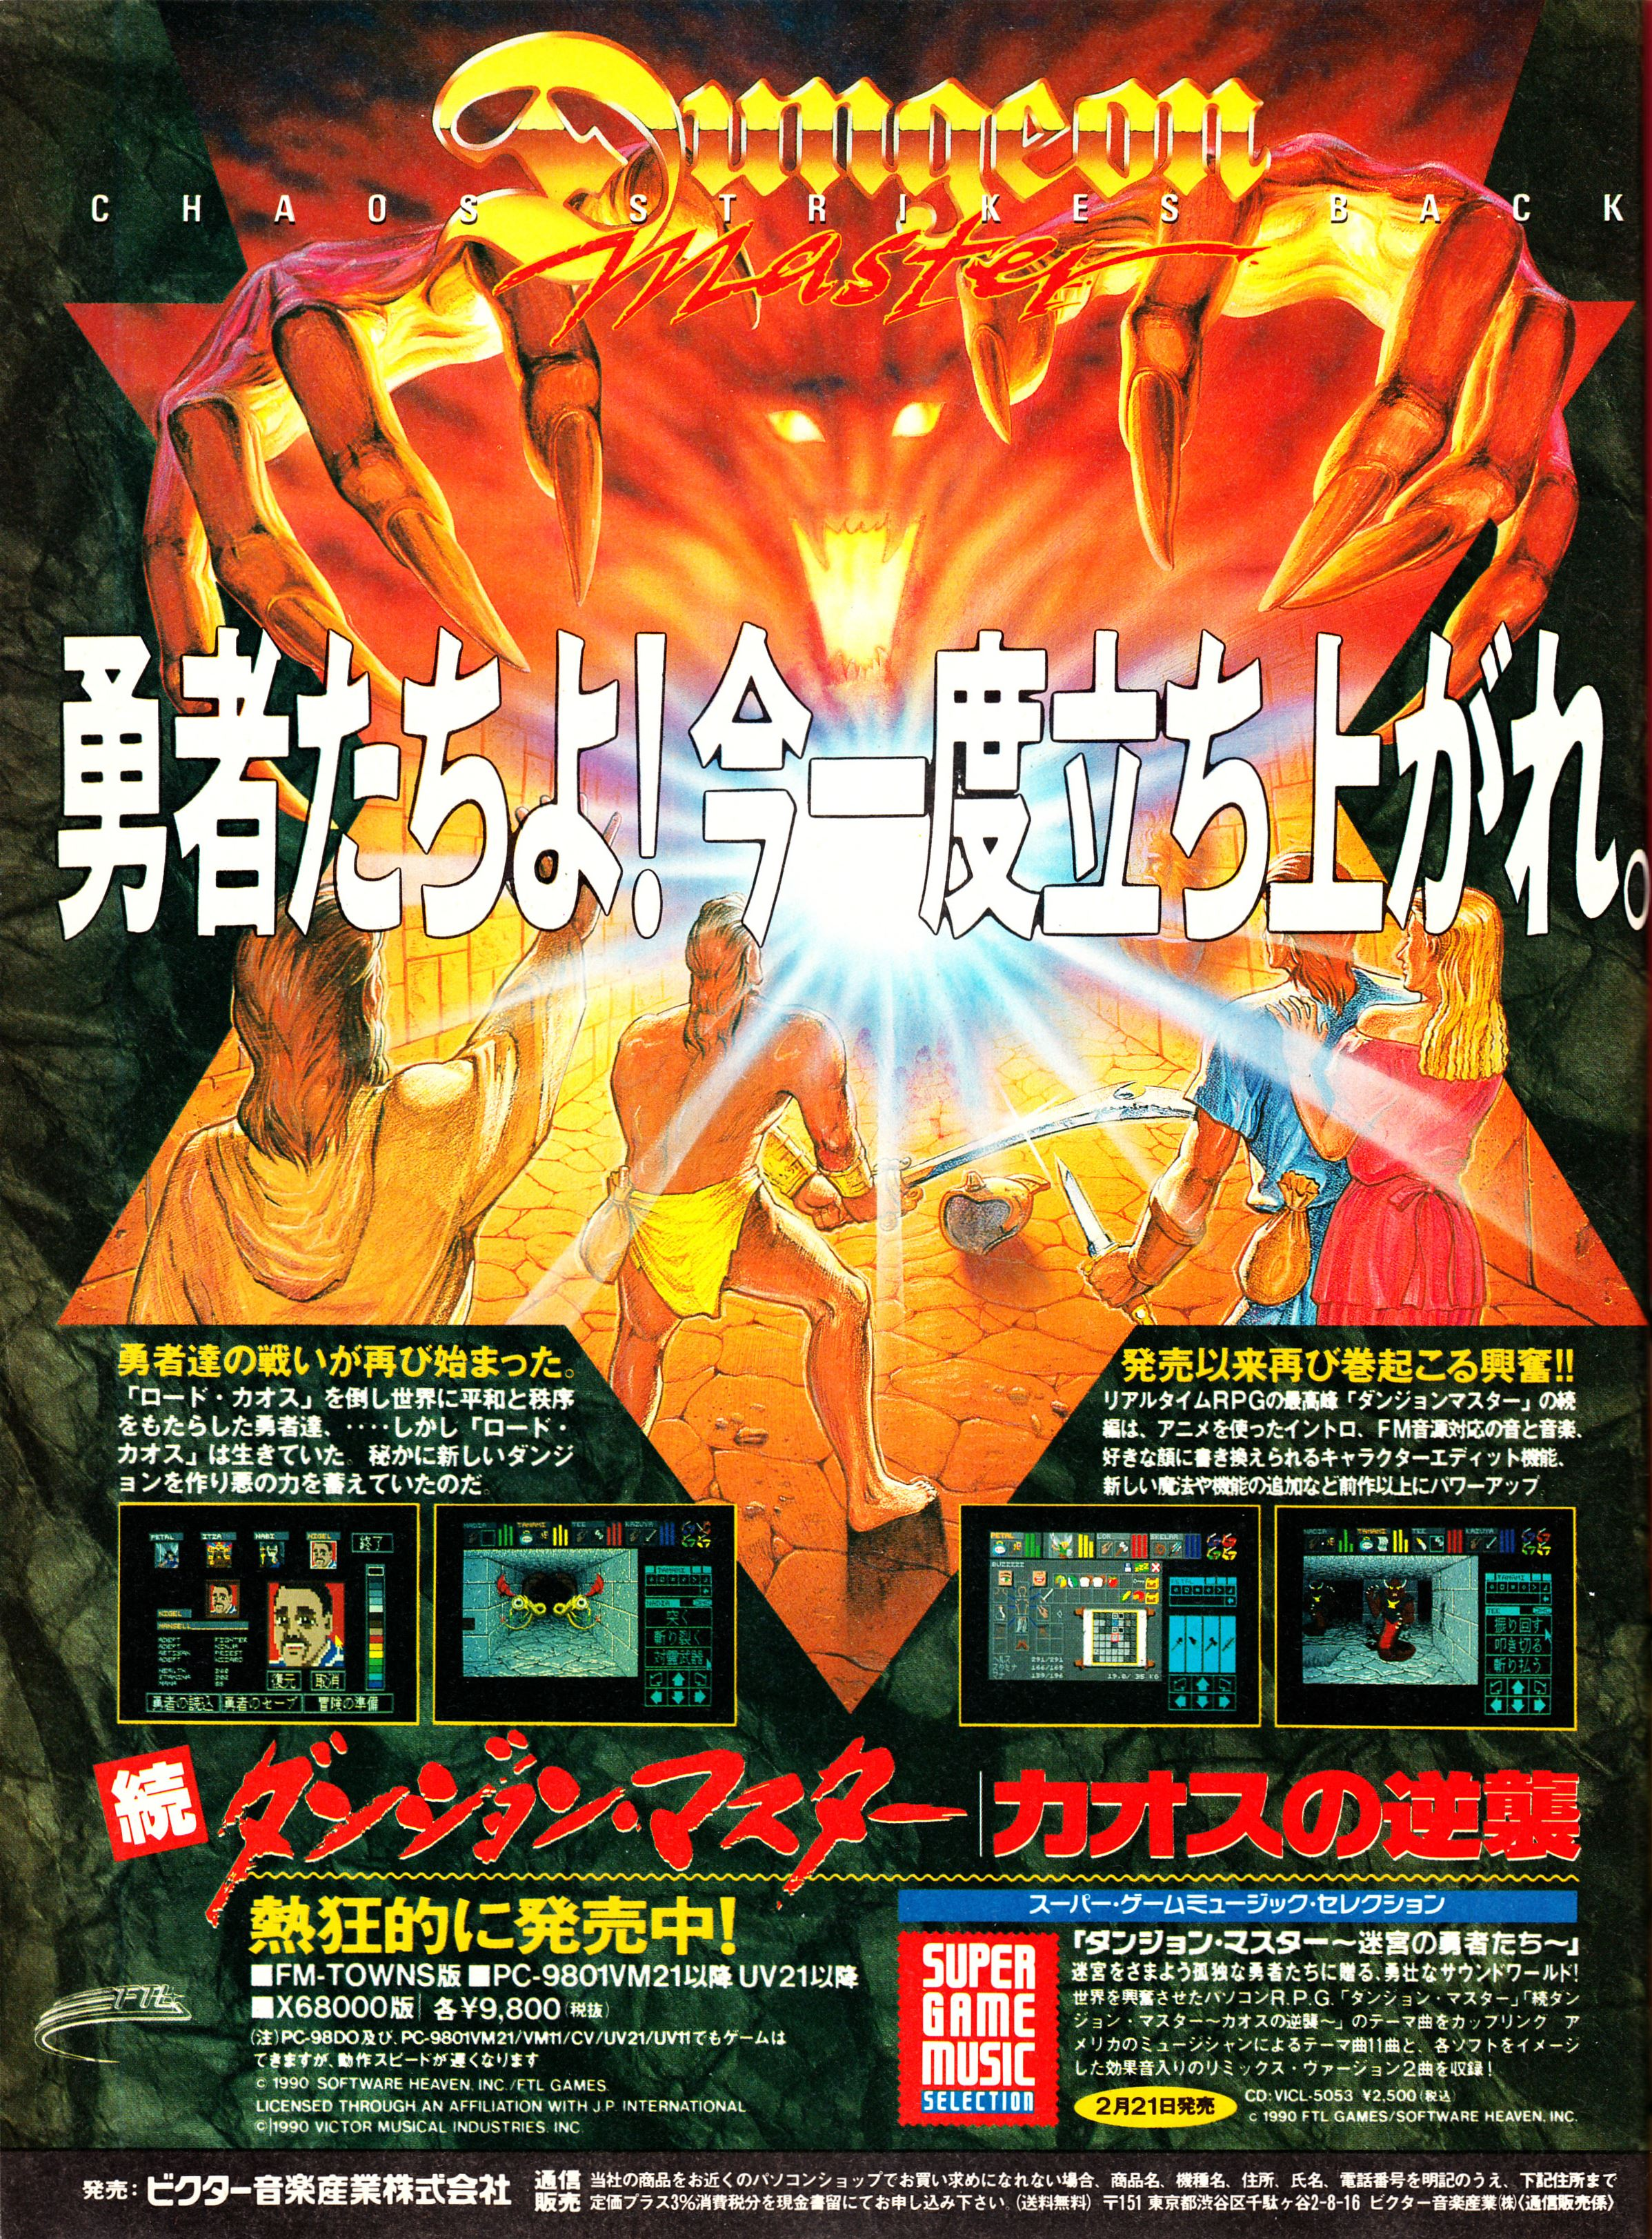 Chaos Strikes Back Advertisement published in Japanese magazine 'Popcom', Vol 9 No 3 01 March 1991, Page 34